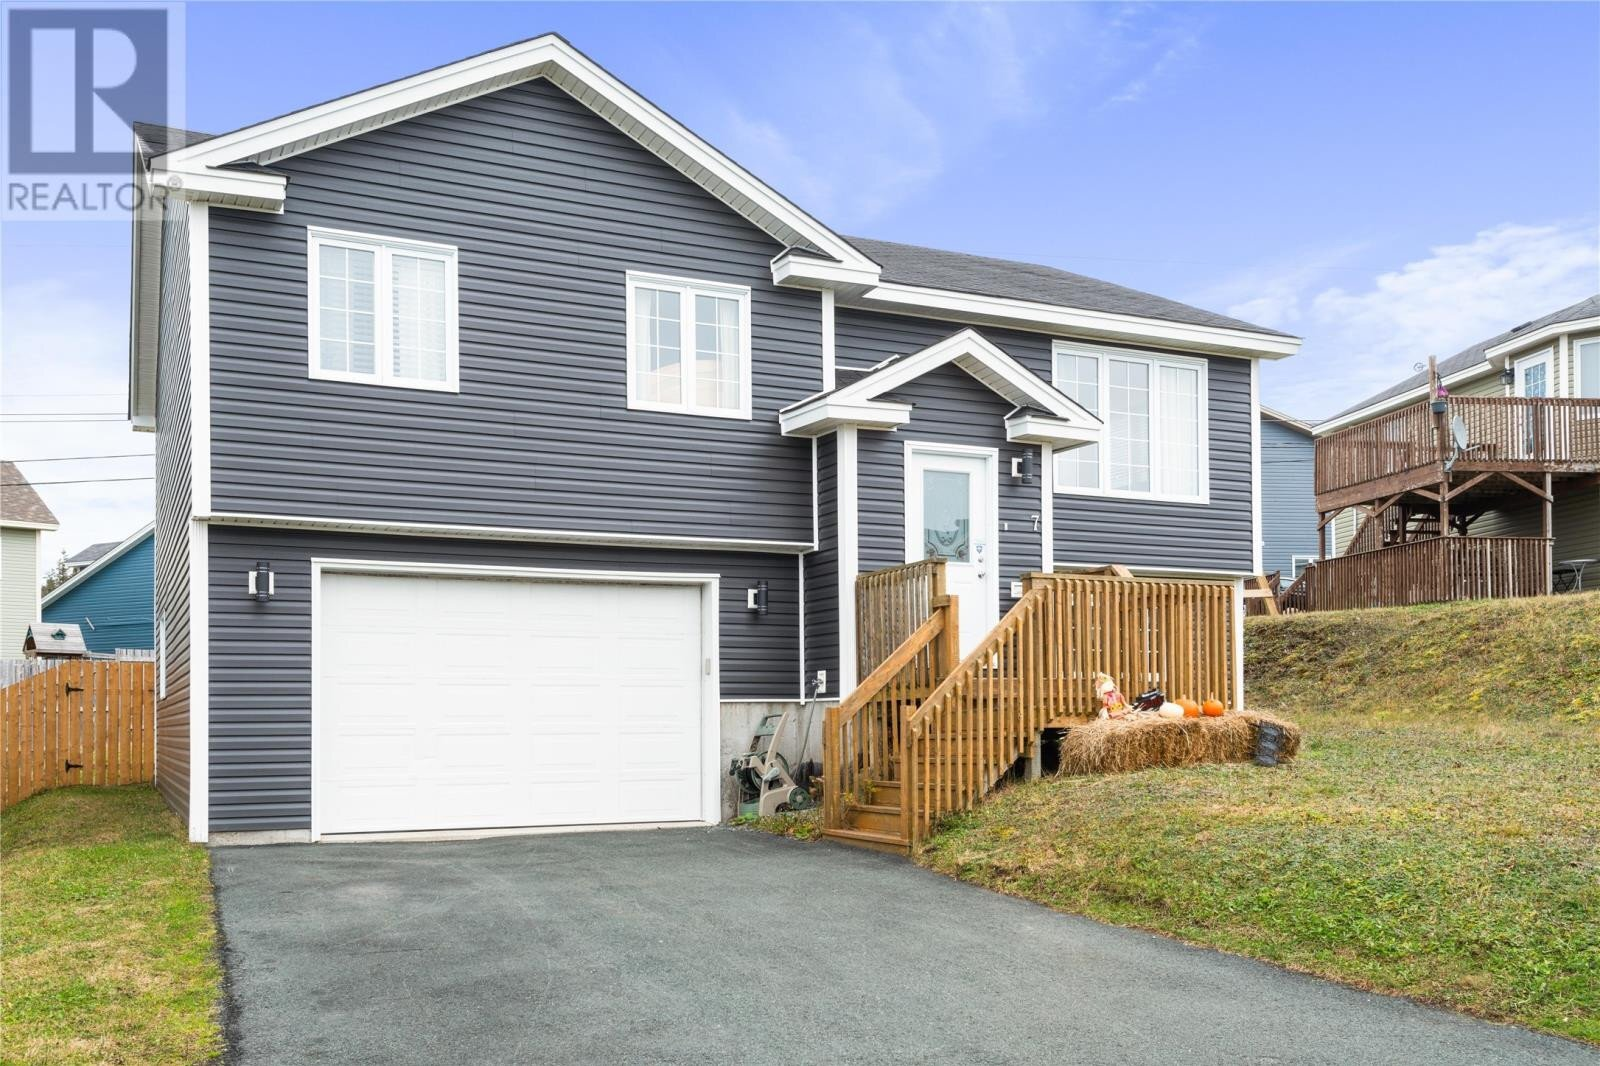 House for sale at 7 Barchester St Paradise Newfoundland - MLS: 1223366